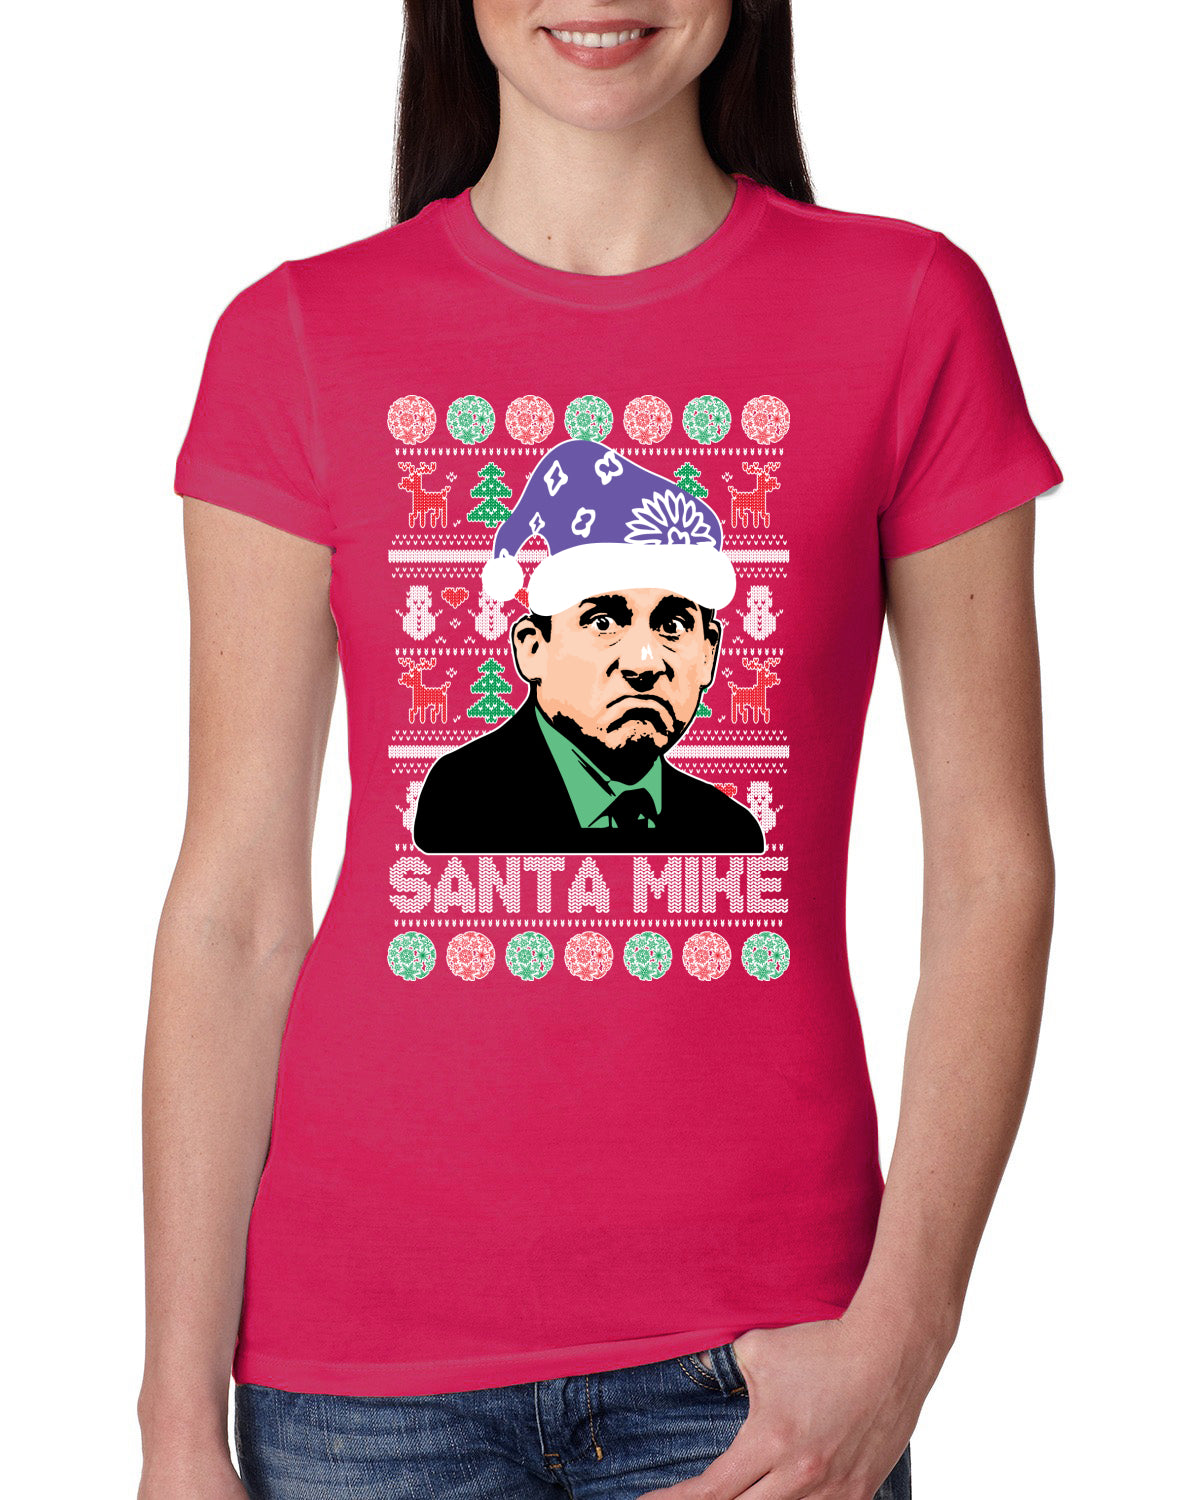 Santa Mike Michael Scott The Office Ugly Christmas Sweater Womens Slim Fit Junior Tee